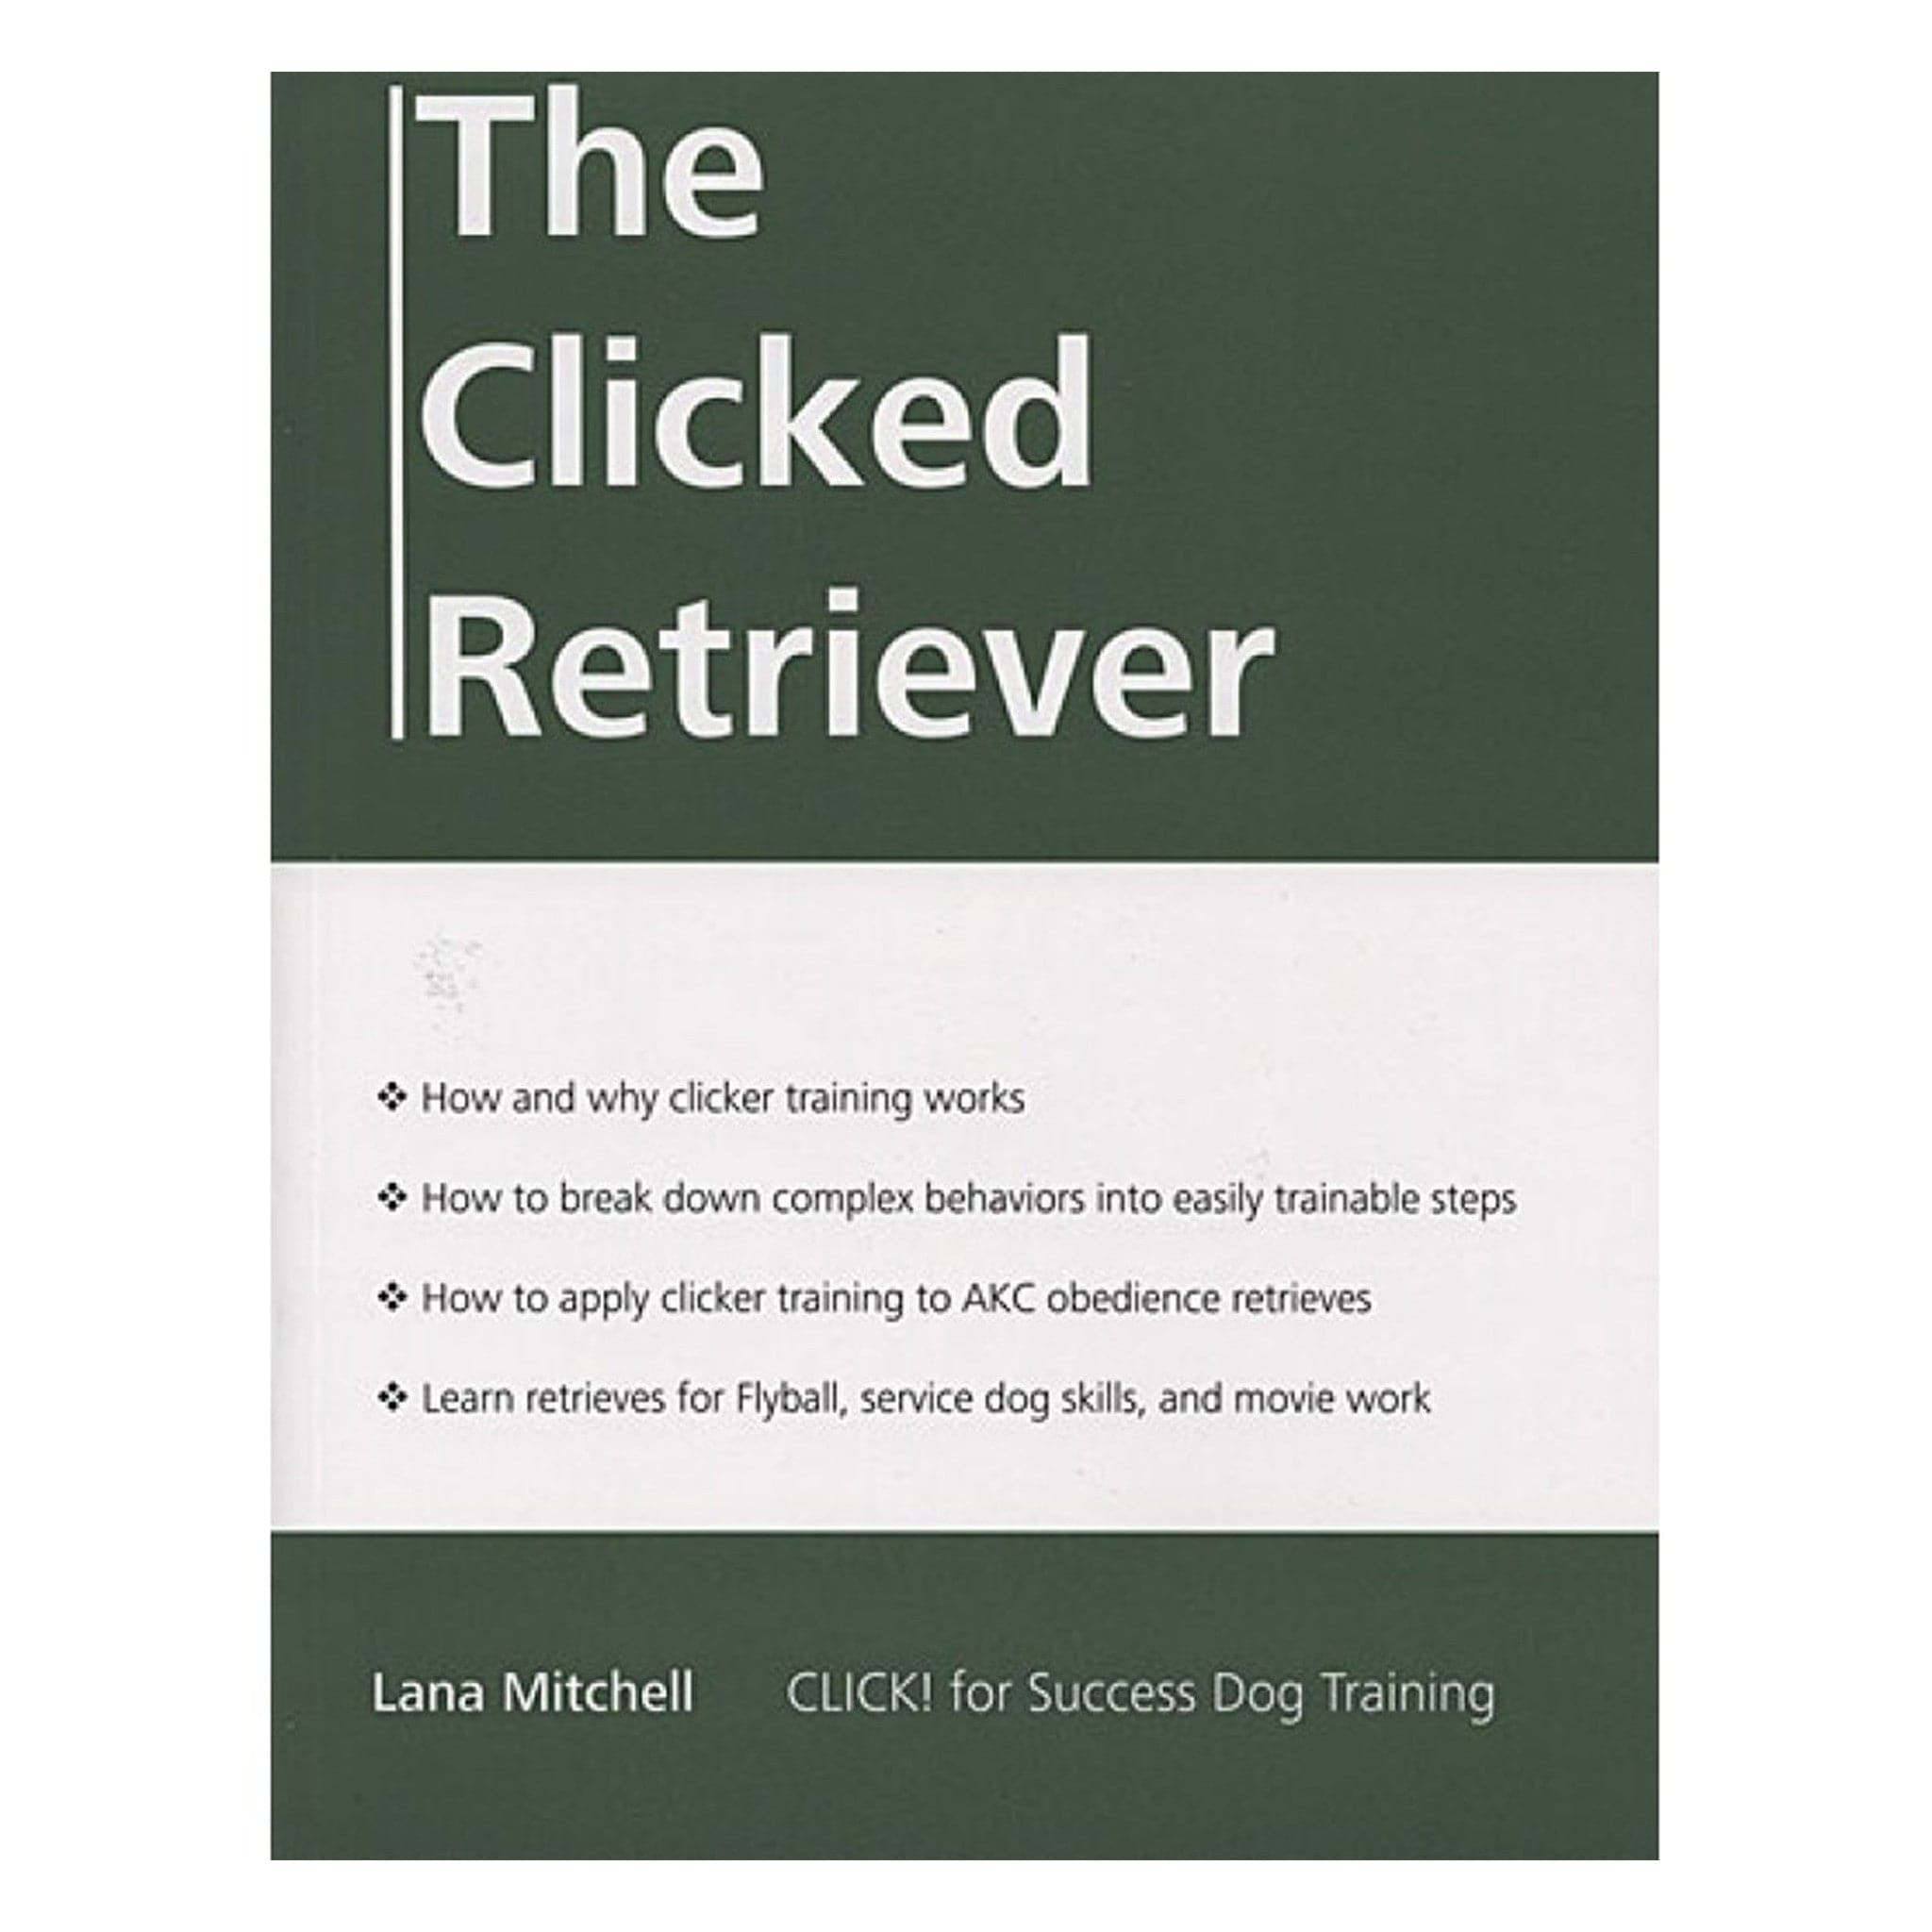 The Clicked Retriever